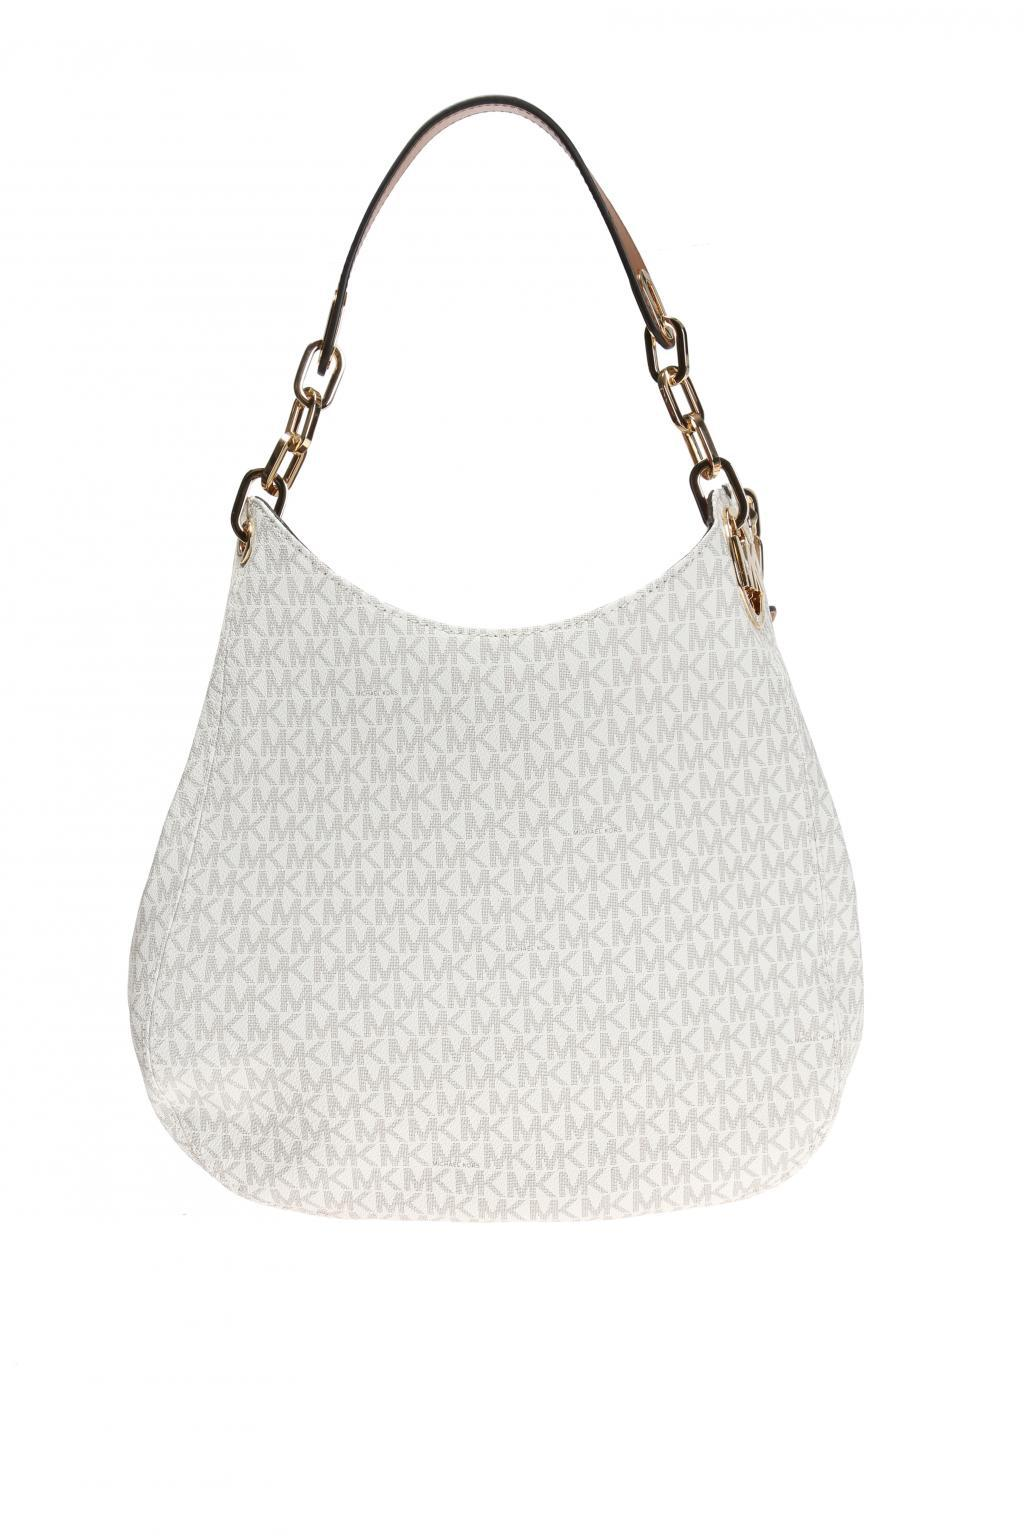 ad808dbed4083c ... where to buy michael kors. womens white fulton shoulder bag e8a0f 7eee3